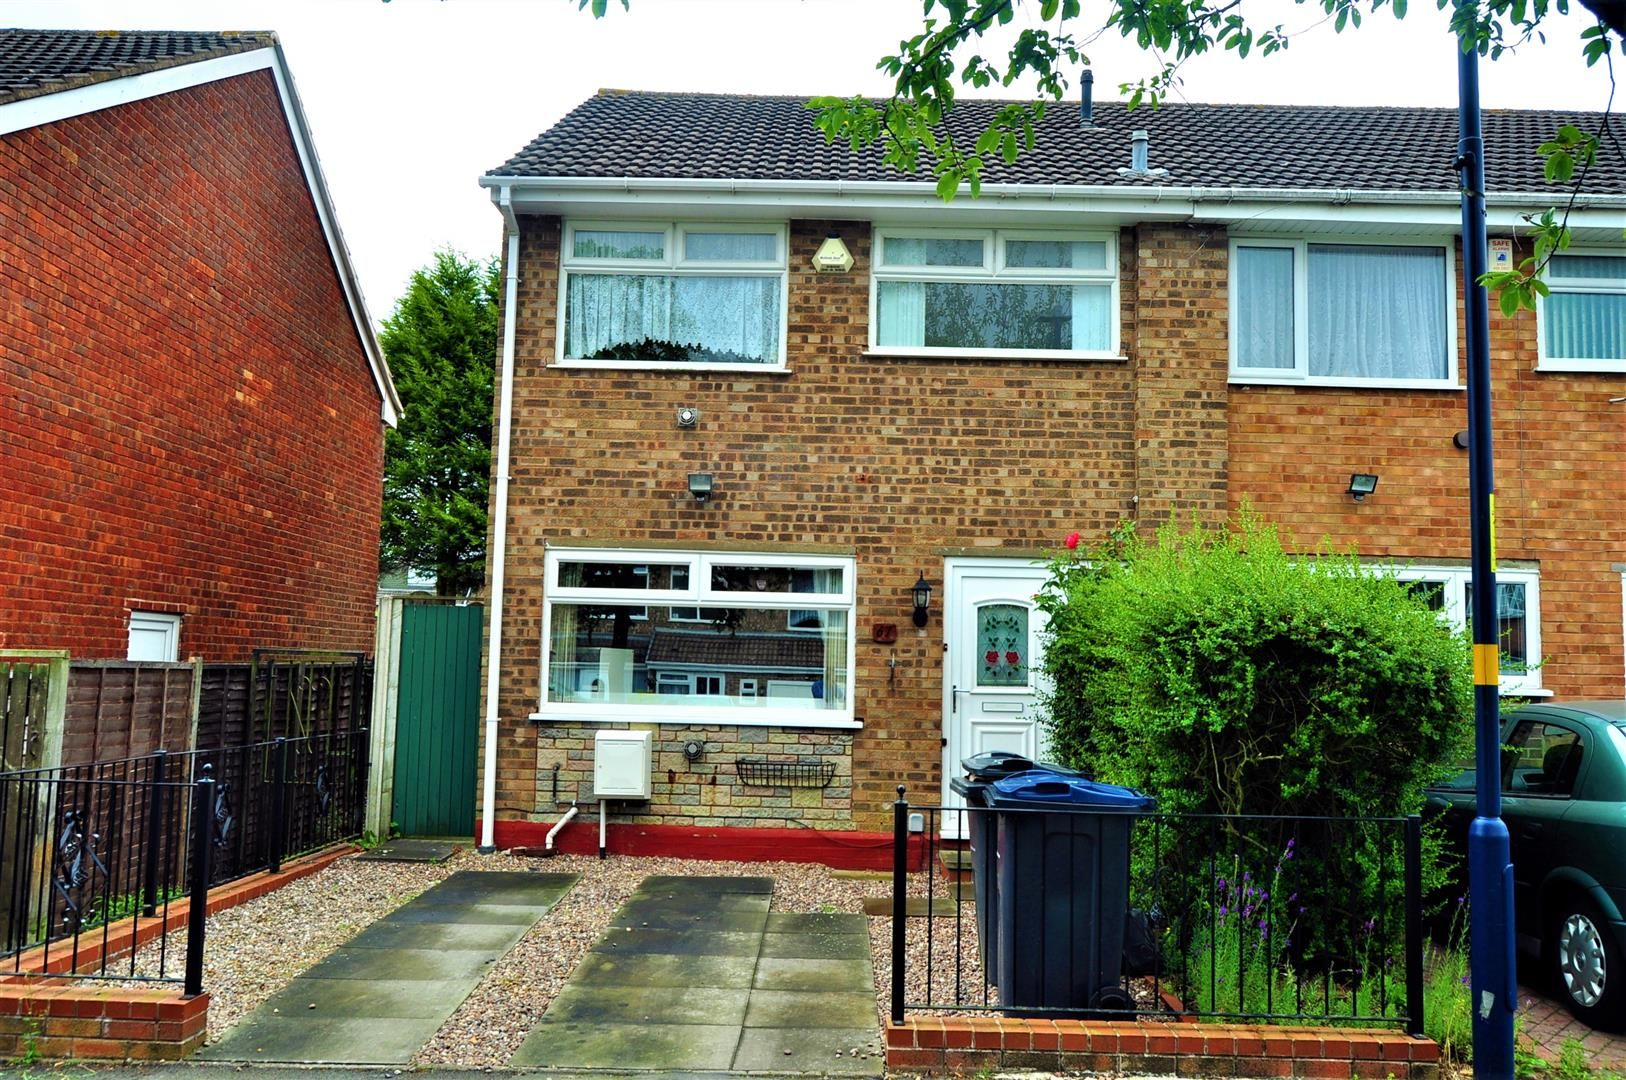 3 bed end-of-terrace for sale in Quinton, B32